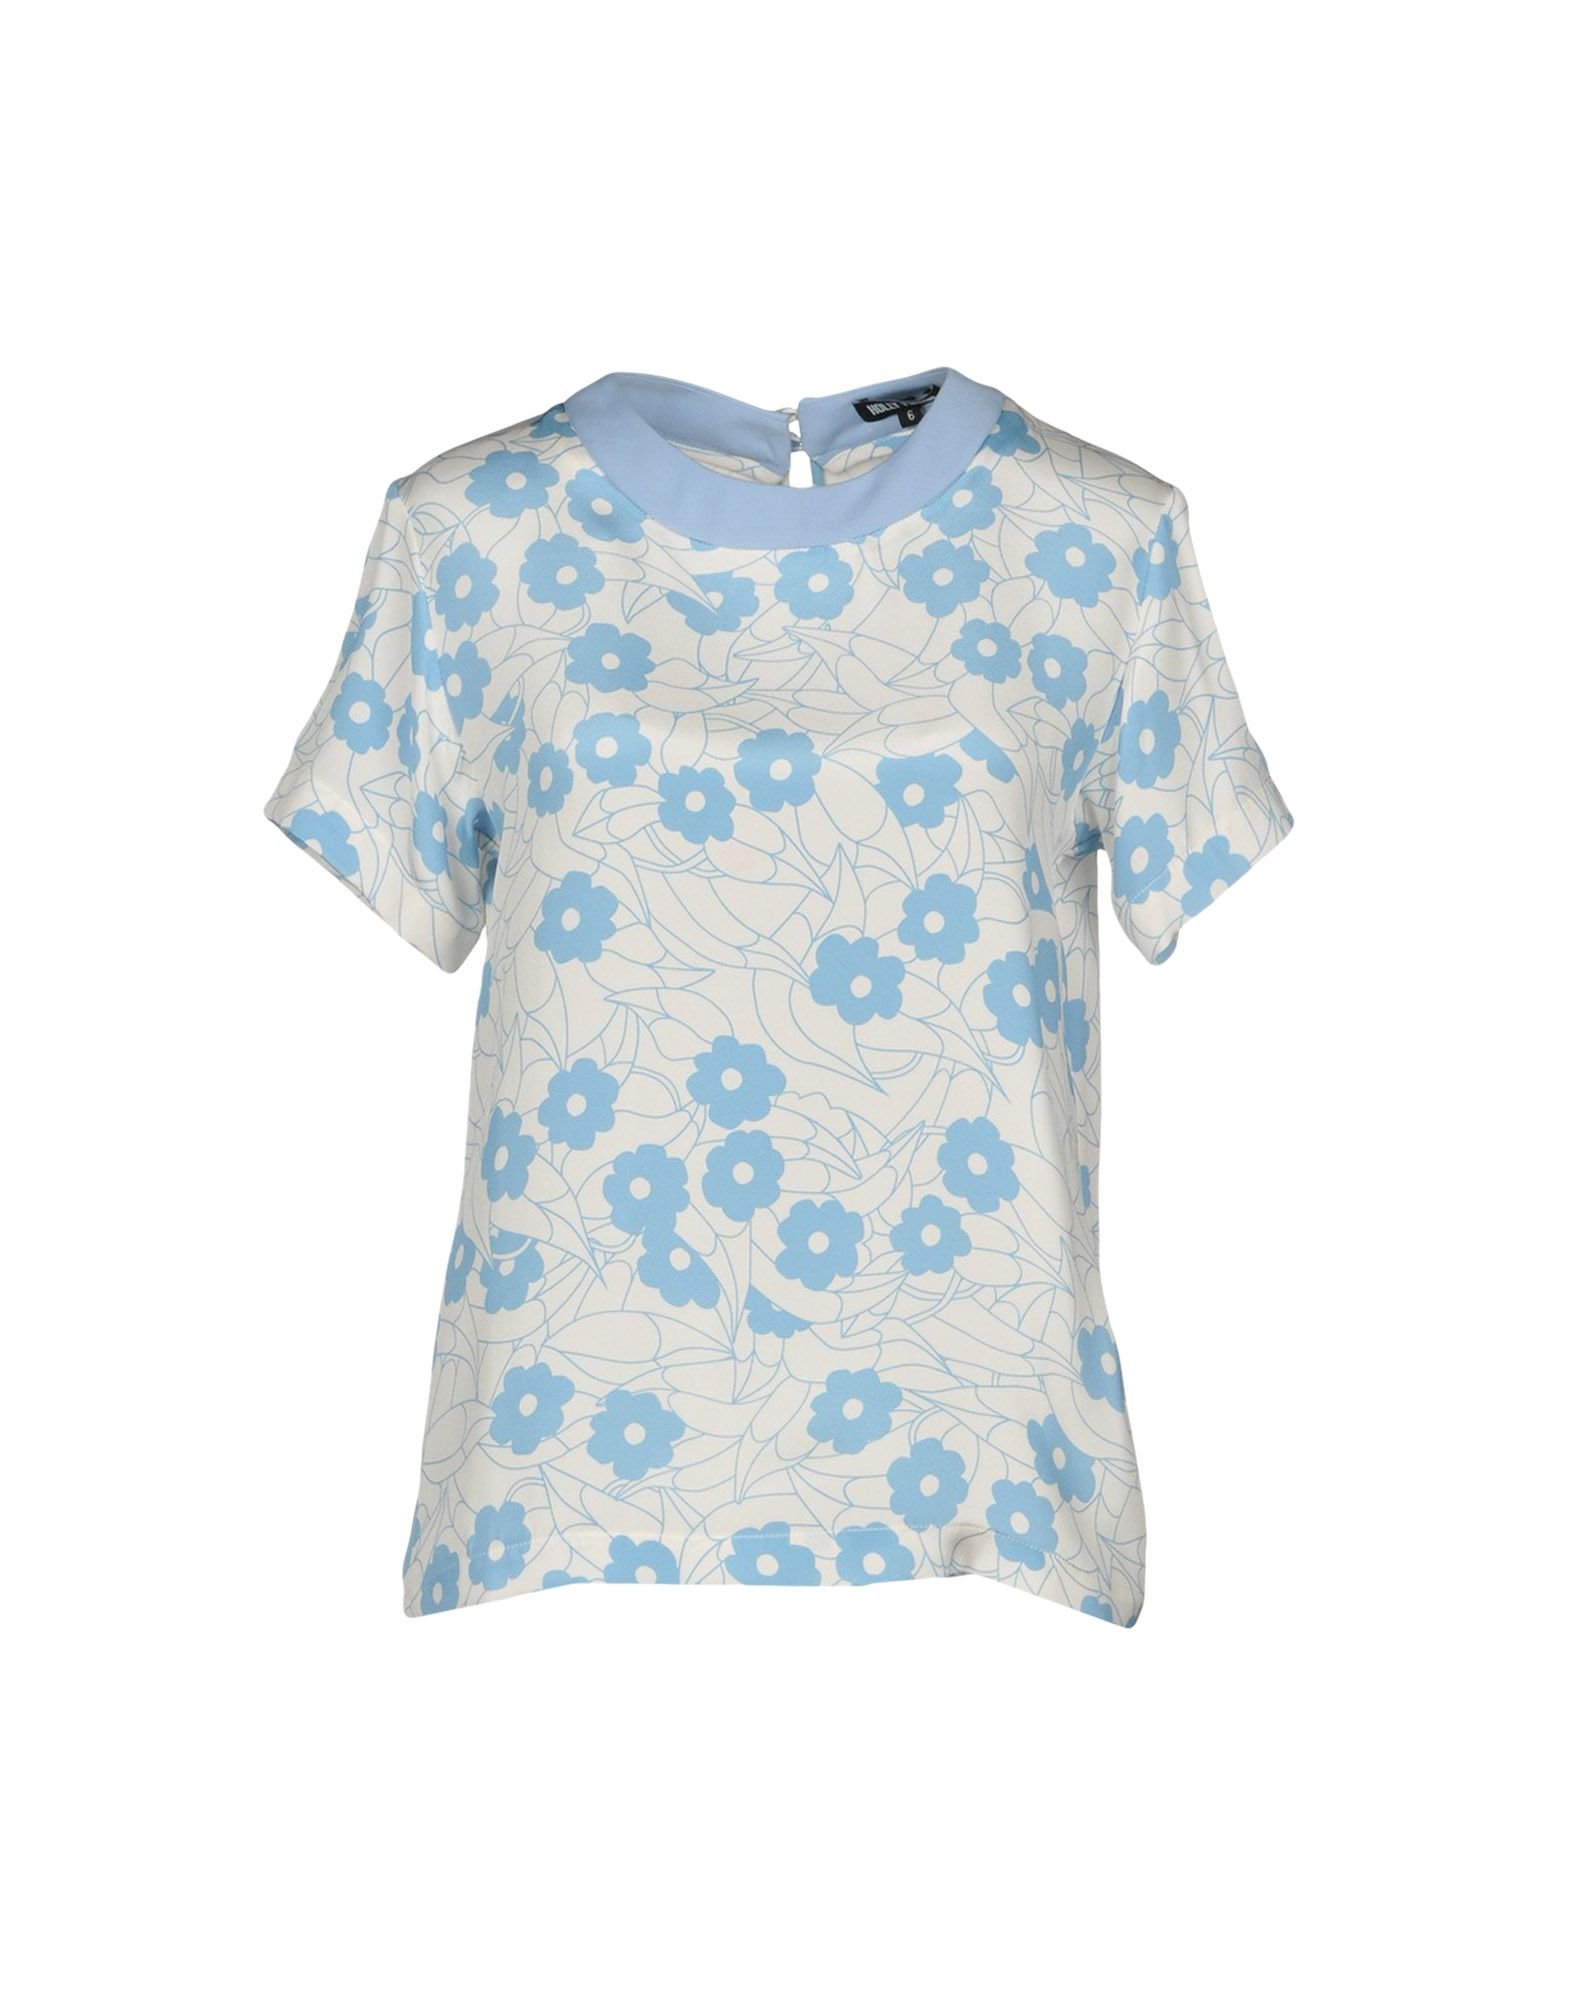 HOLLY FULTON Blouse in Sky Blue